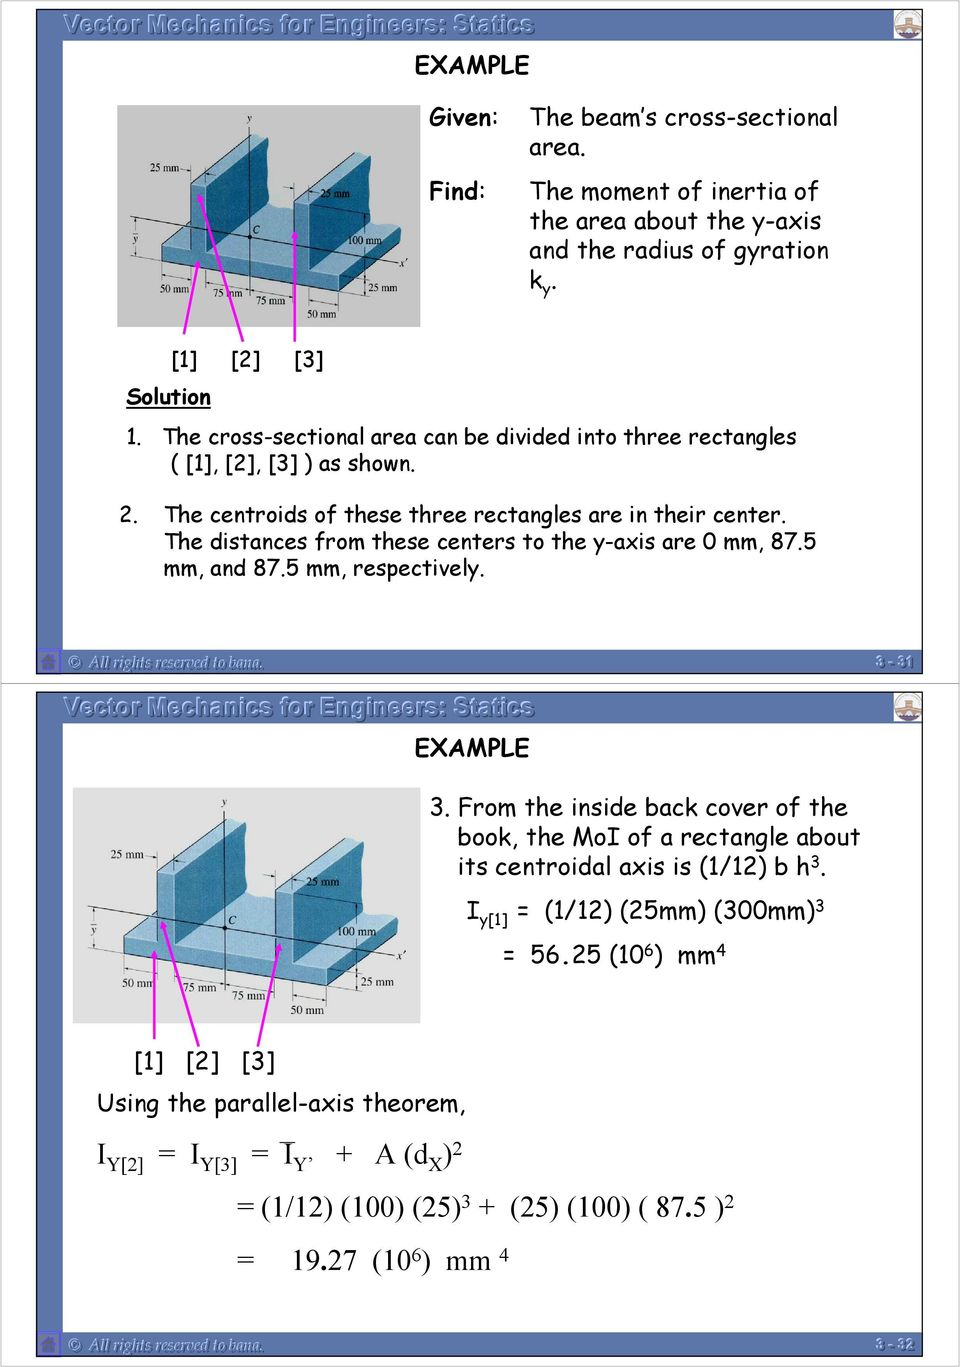 mm, and 875 mm, respectivel All rights reserved to bana -- 1 EXAMPLE From the inside back cover of the book, the MoI of a rectangle about its centroidal axis is (1/1) b h I [1]